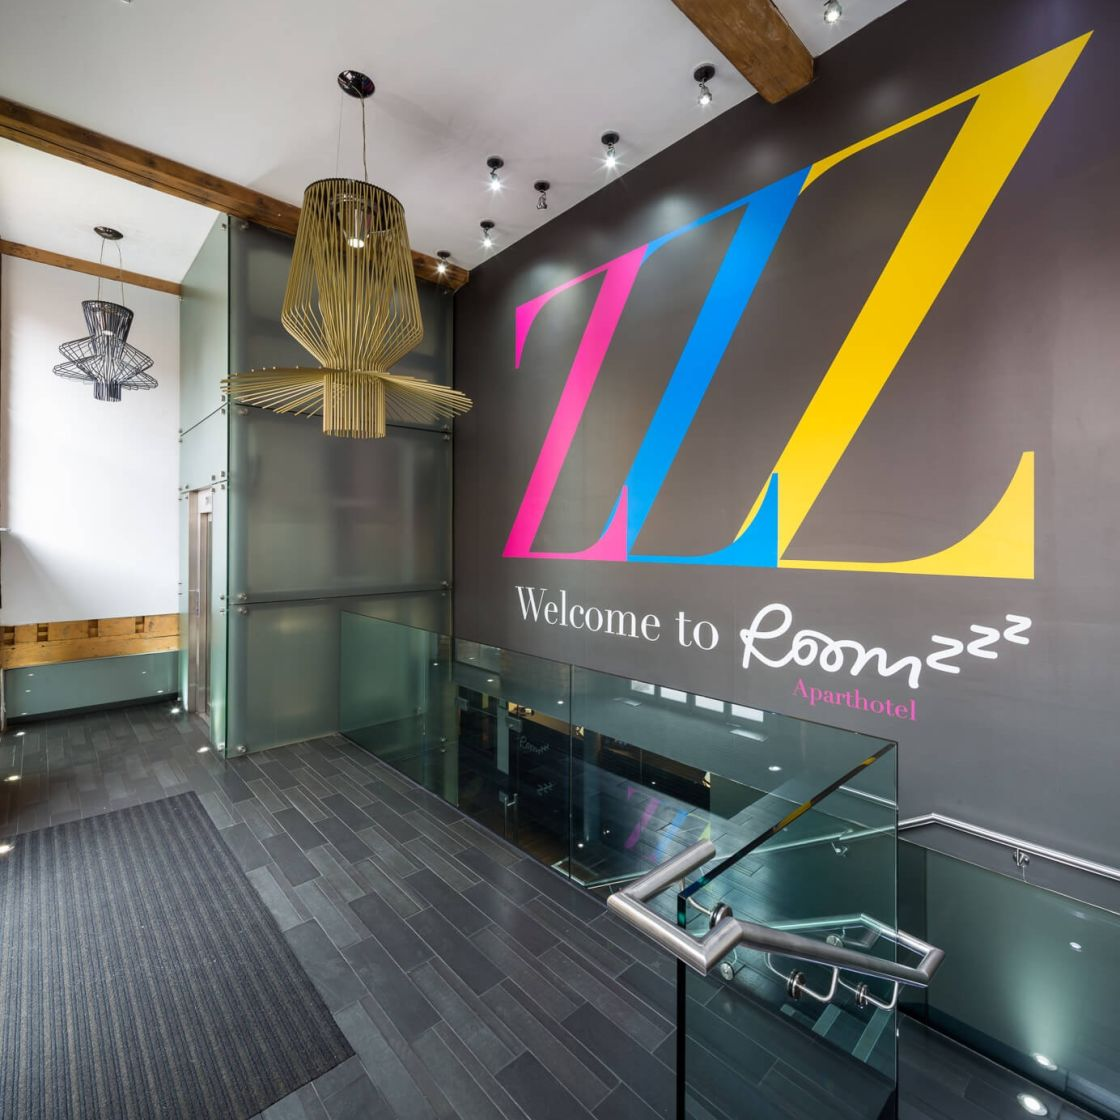 IconInc @ Roomzzz Manchester City Entrance with lift and stairs. Student Accommodation in Manchester